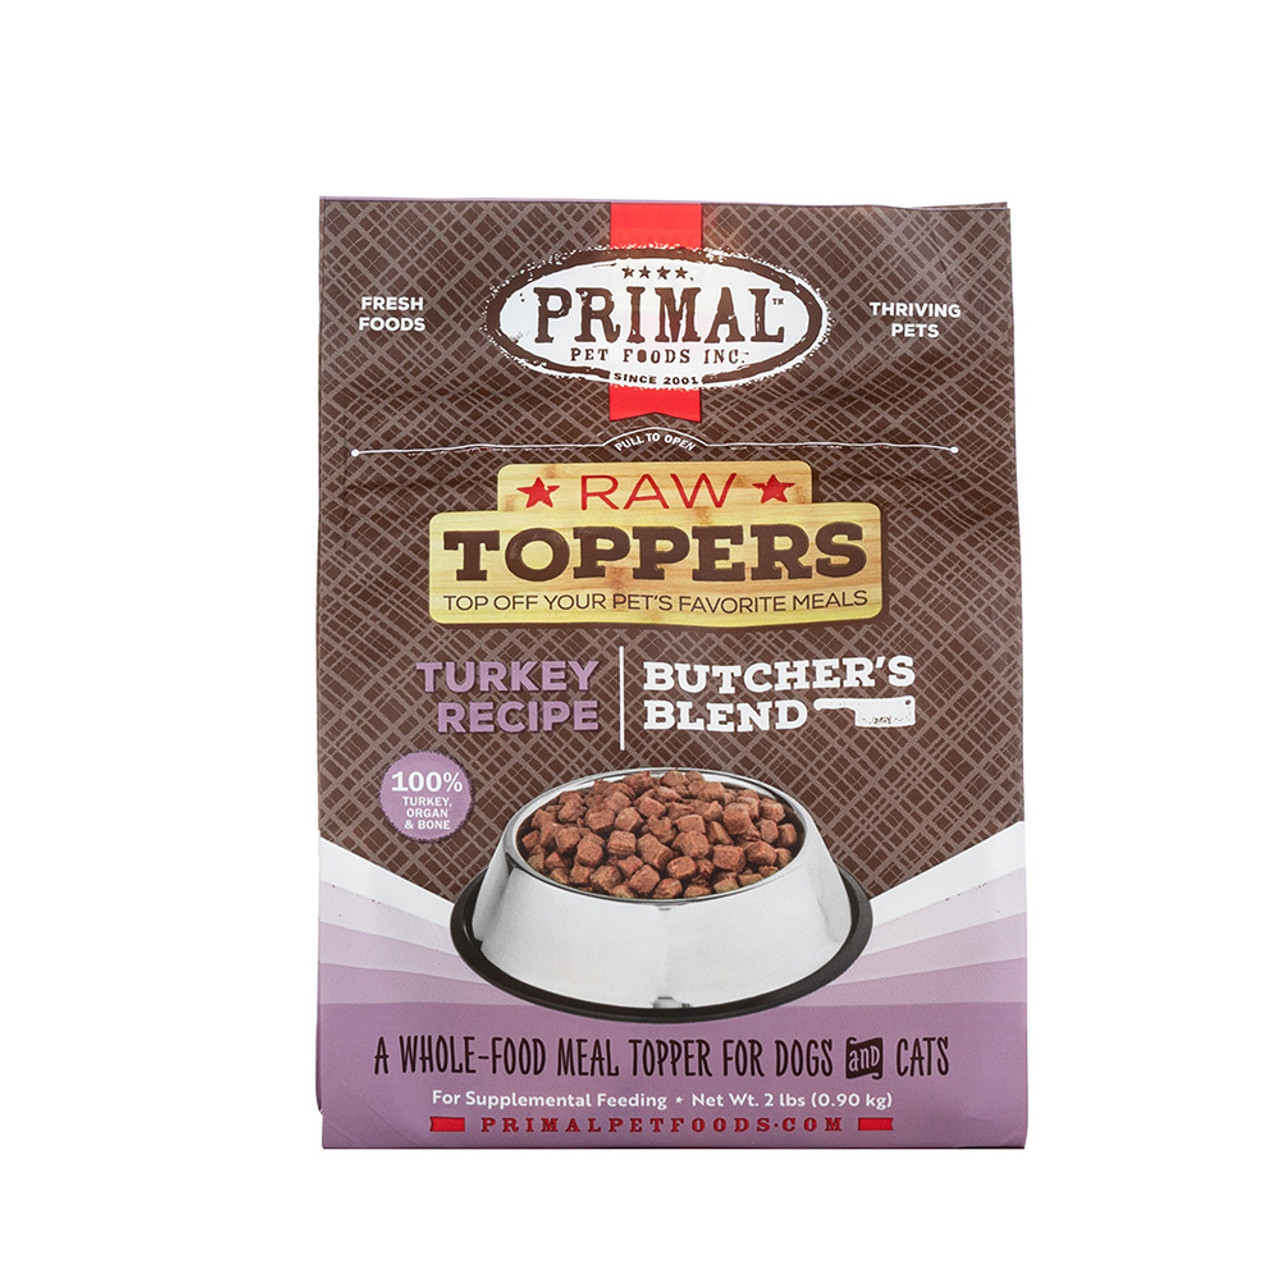 Raw Toppers Butcher's Blend Turkey Recipe Frozen Meal Topper for Dogs & Cats